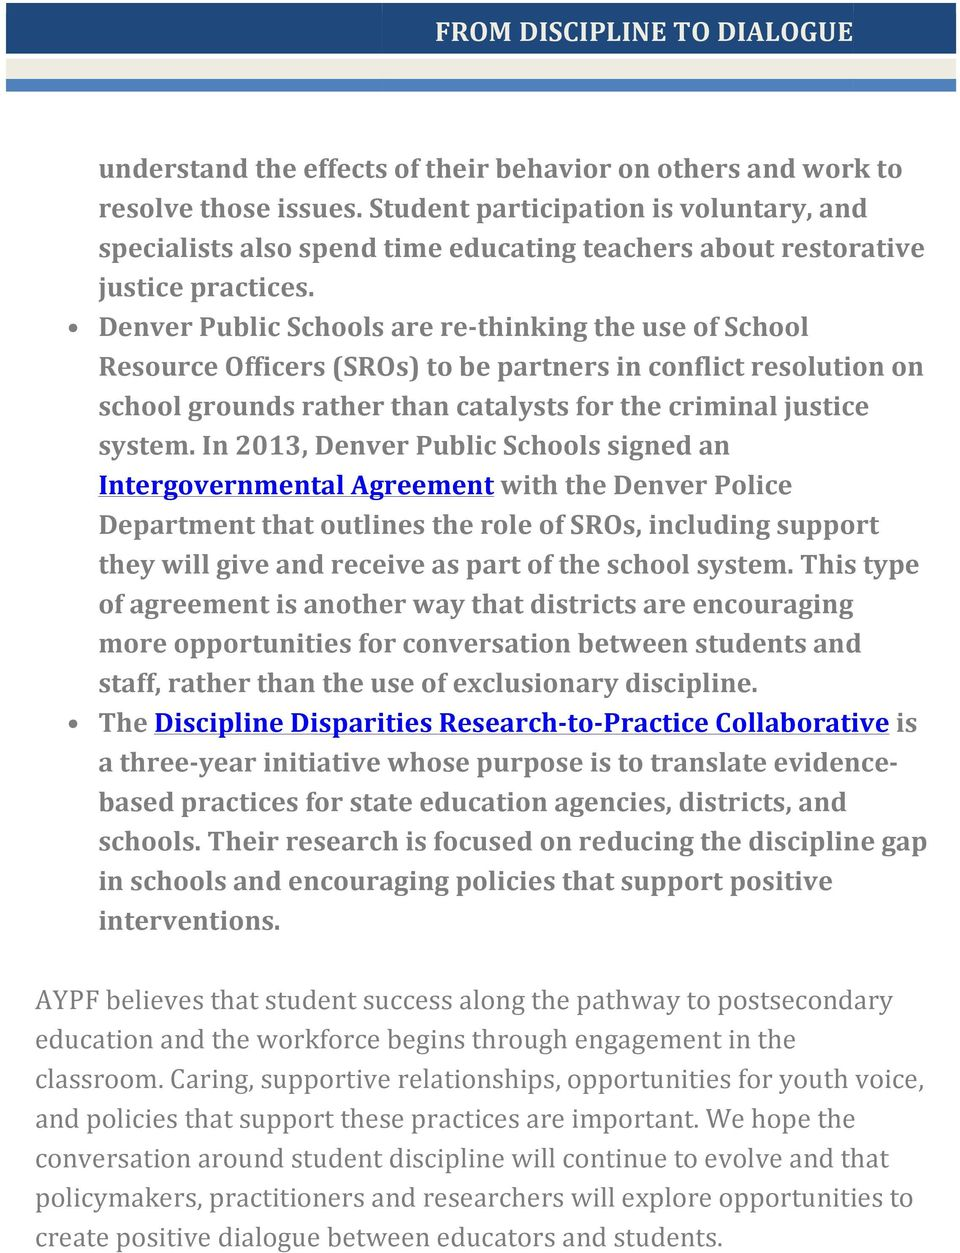 Denver Public Schools are re- thinking the use of School Resource Officers (SROs) to be partners in conflict resolution on school grounds rather than catalysts for the criminal justice system.